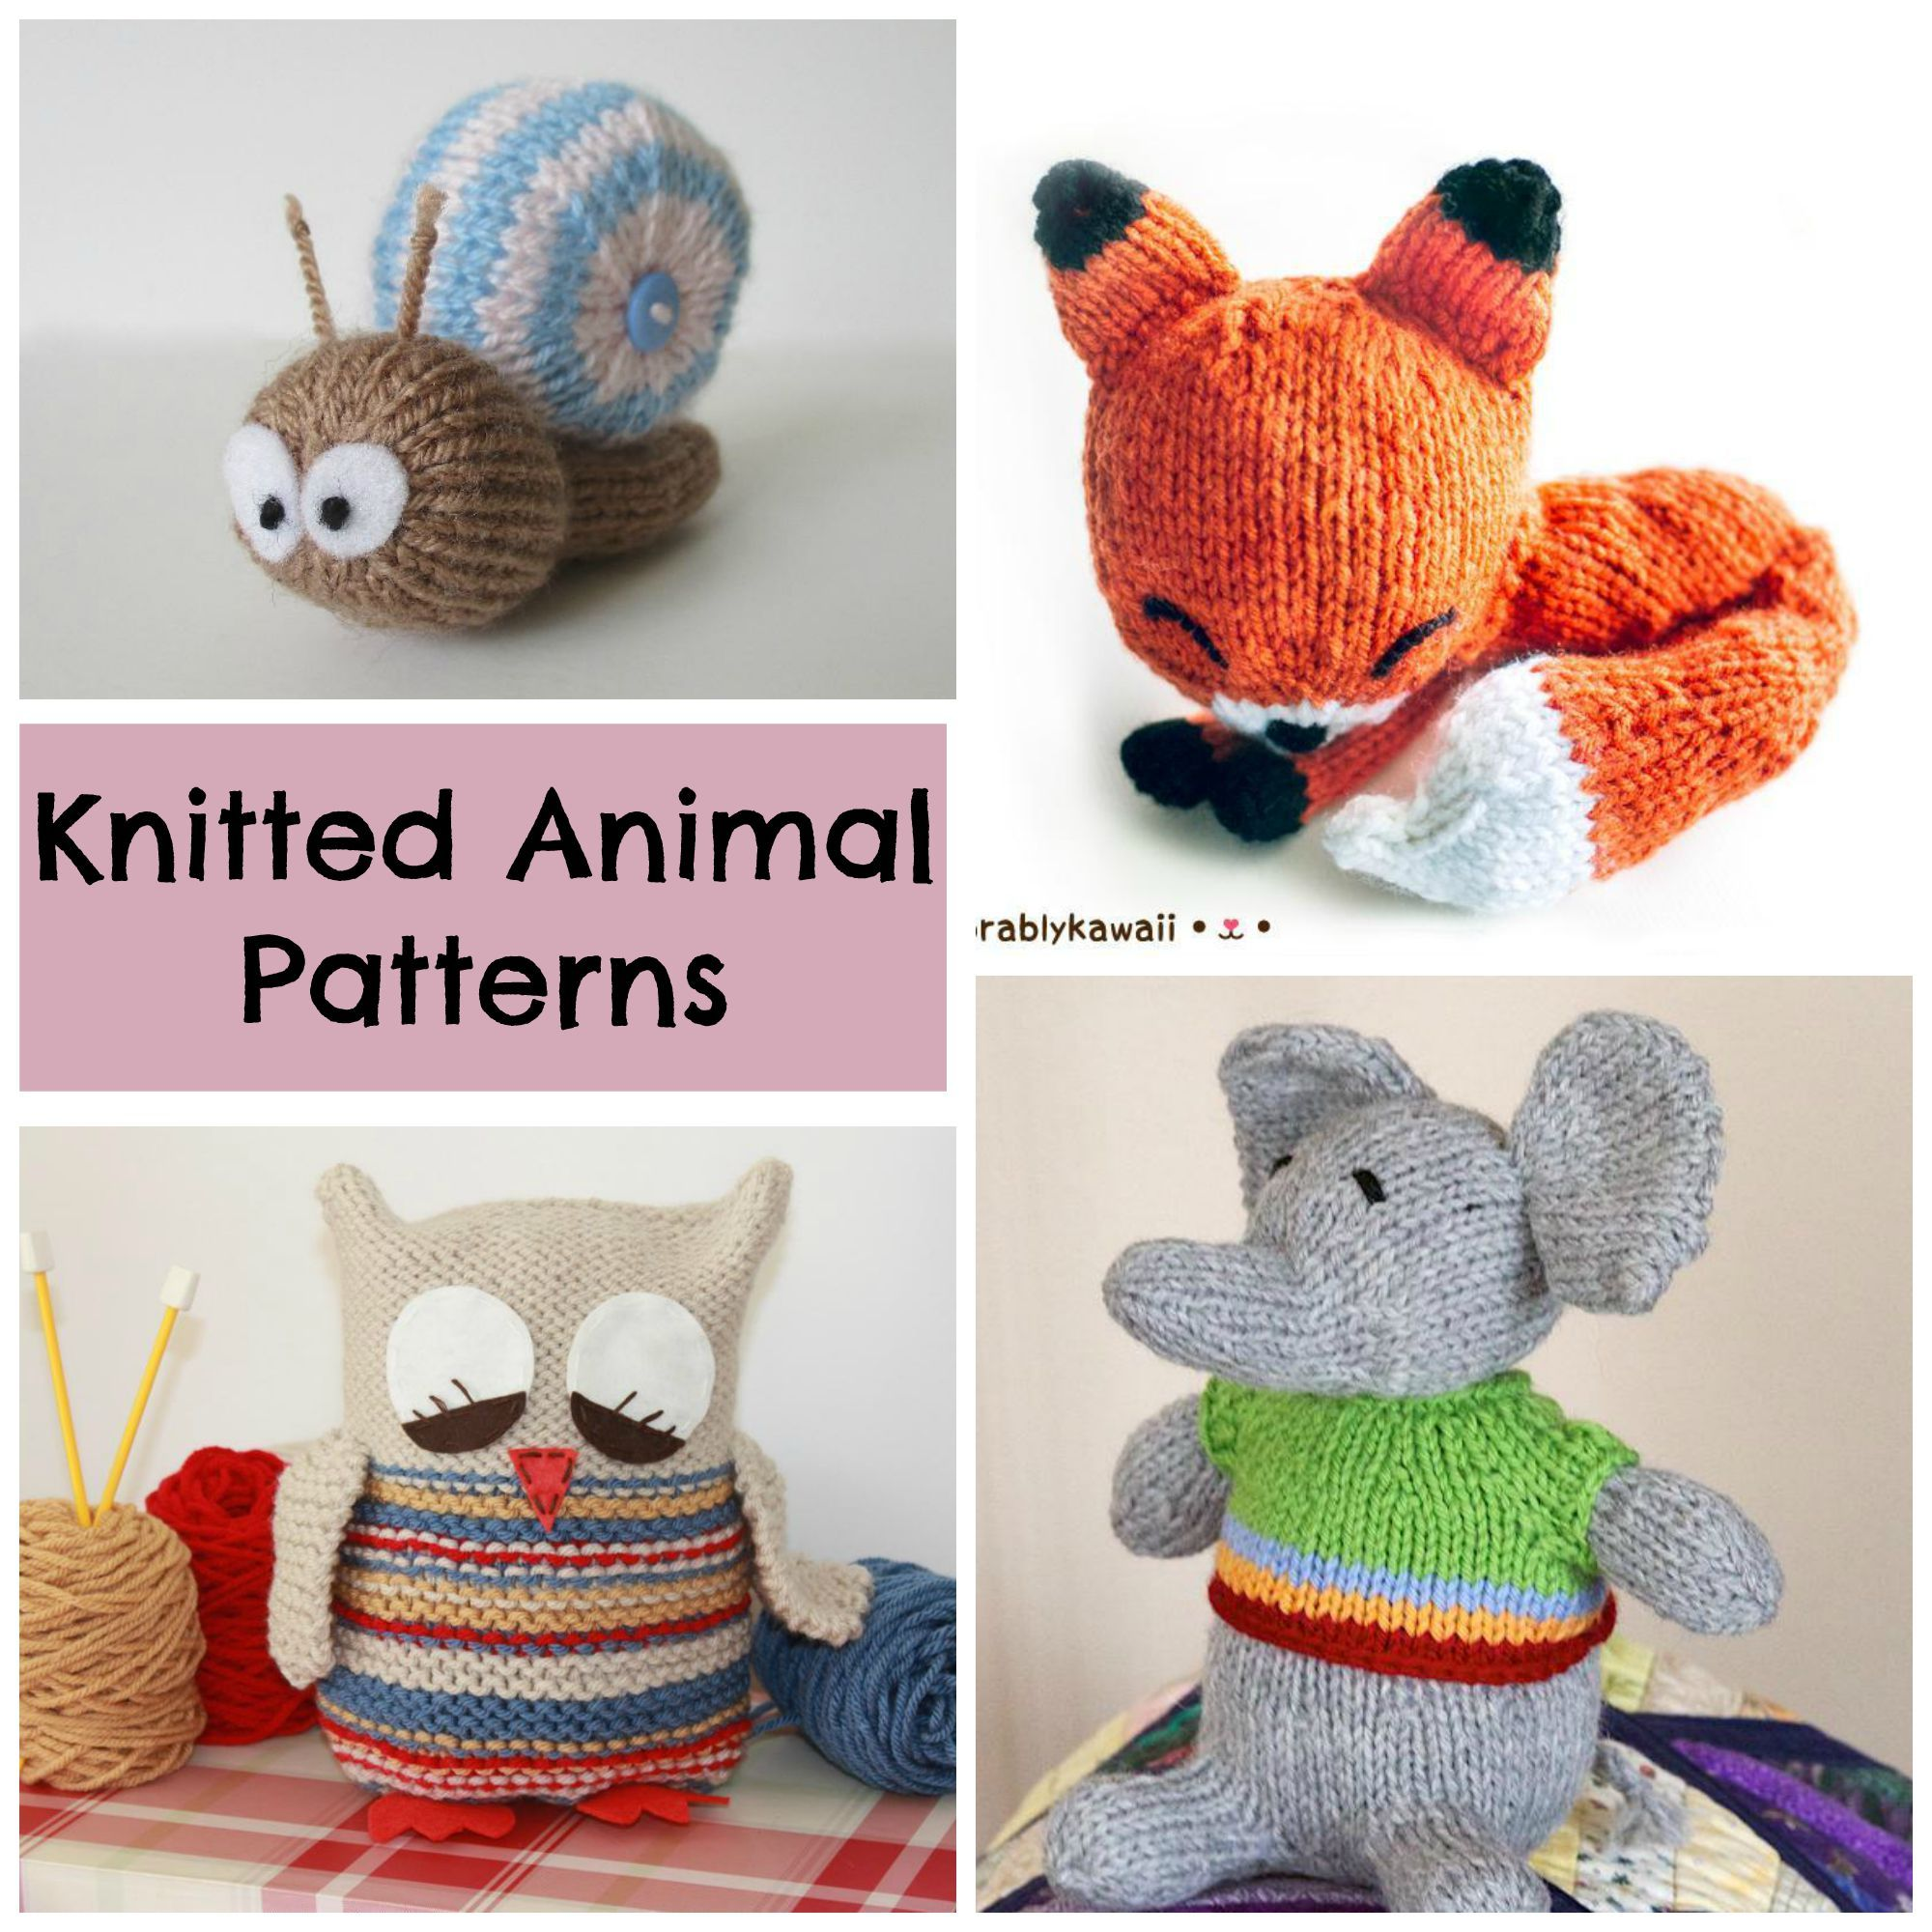 Bring On the Cuddles! 7 Knitted Animals to Love | Hug, Cuddling and ...